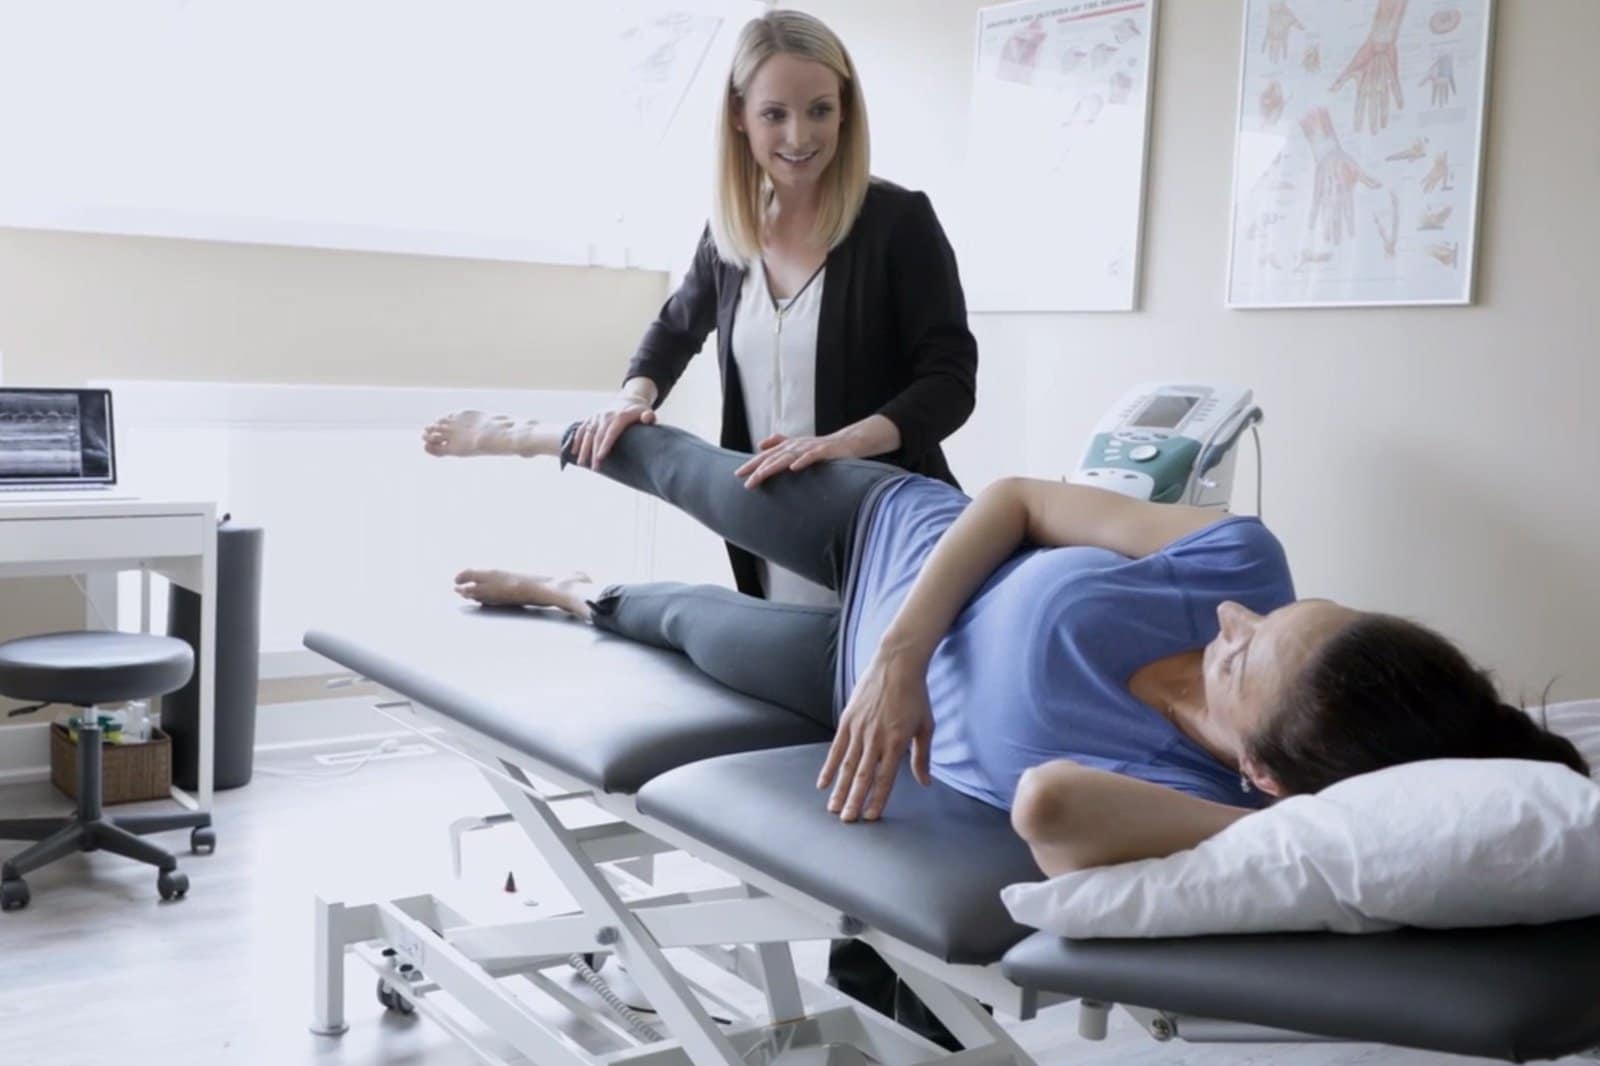 Phoenix Physical Therapy Rehabilitation, PLLC